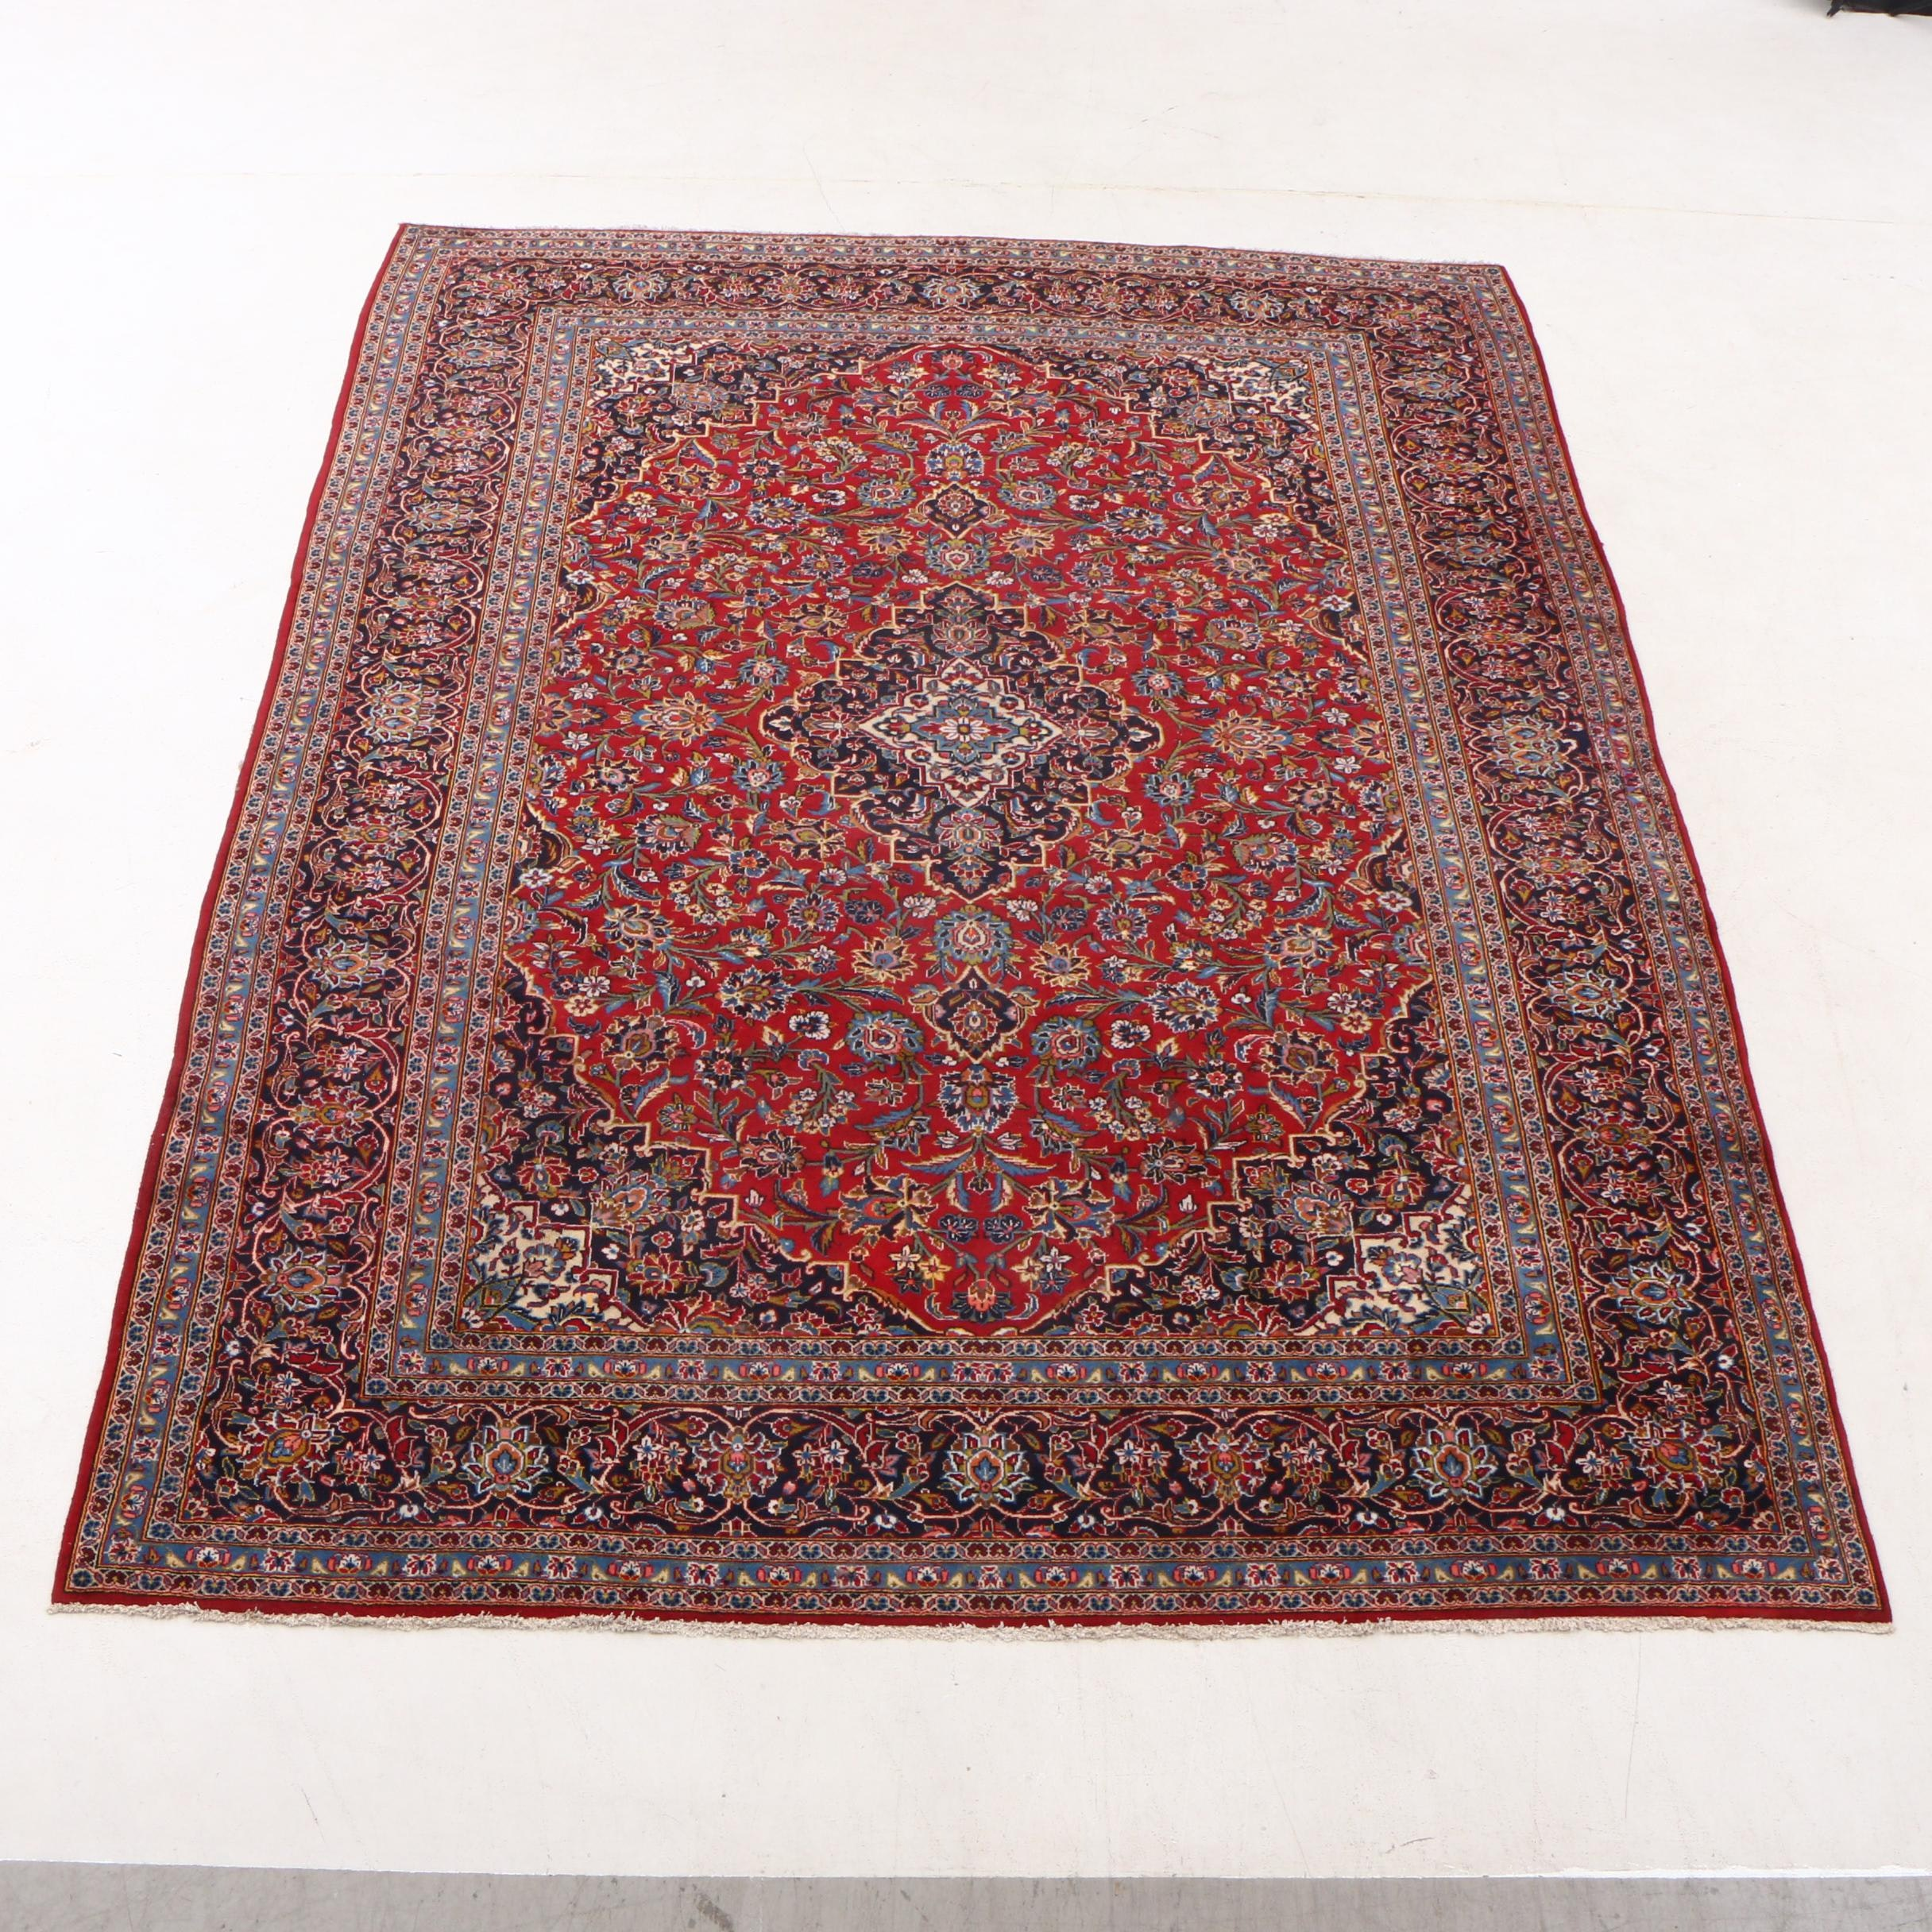 Hand-Knotted Persian Ardekan Kashan Wool Room Sized Rug